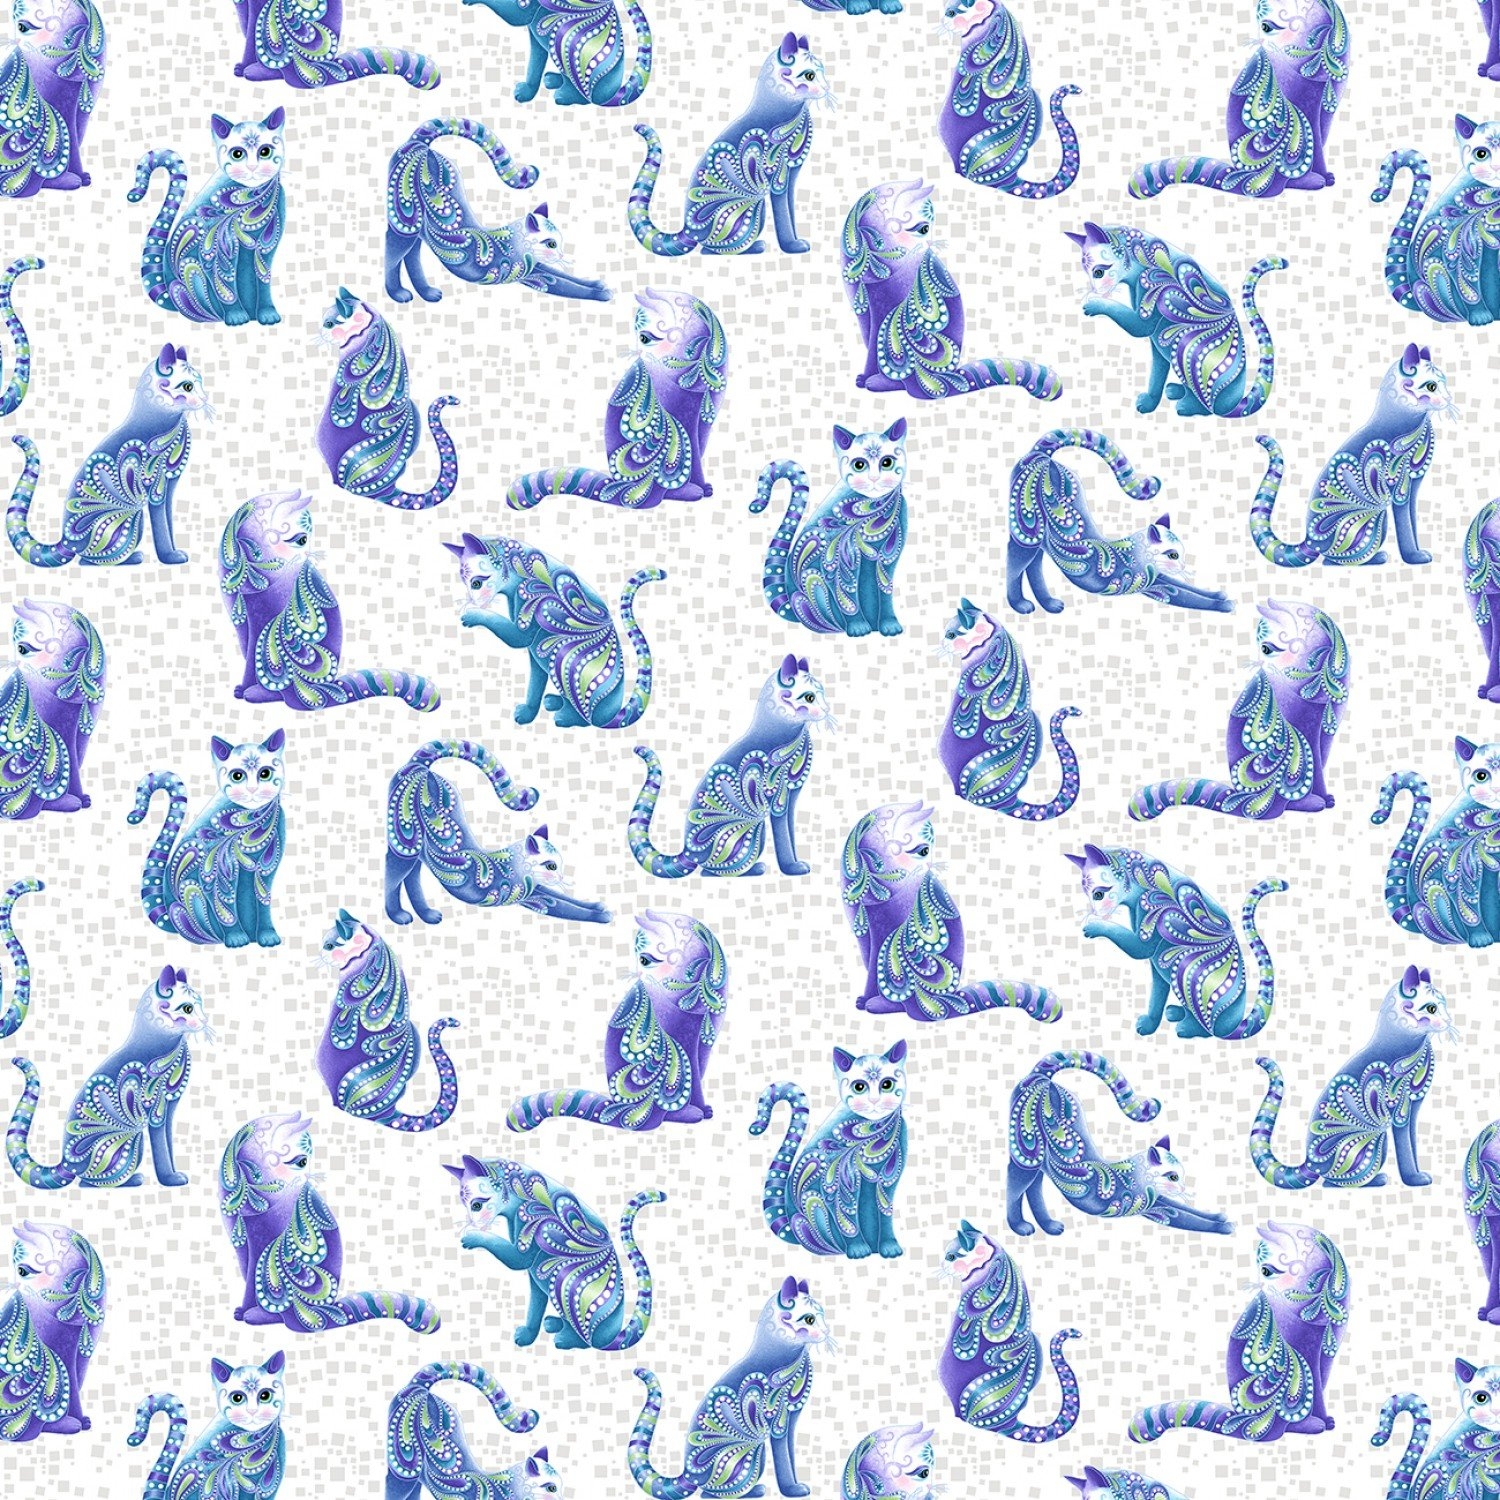 Cat-i-tude 3 Singing the Blues Artist-0-Cat White Fabric by the Yard